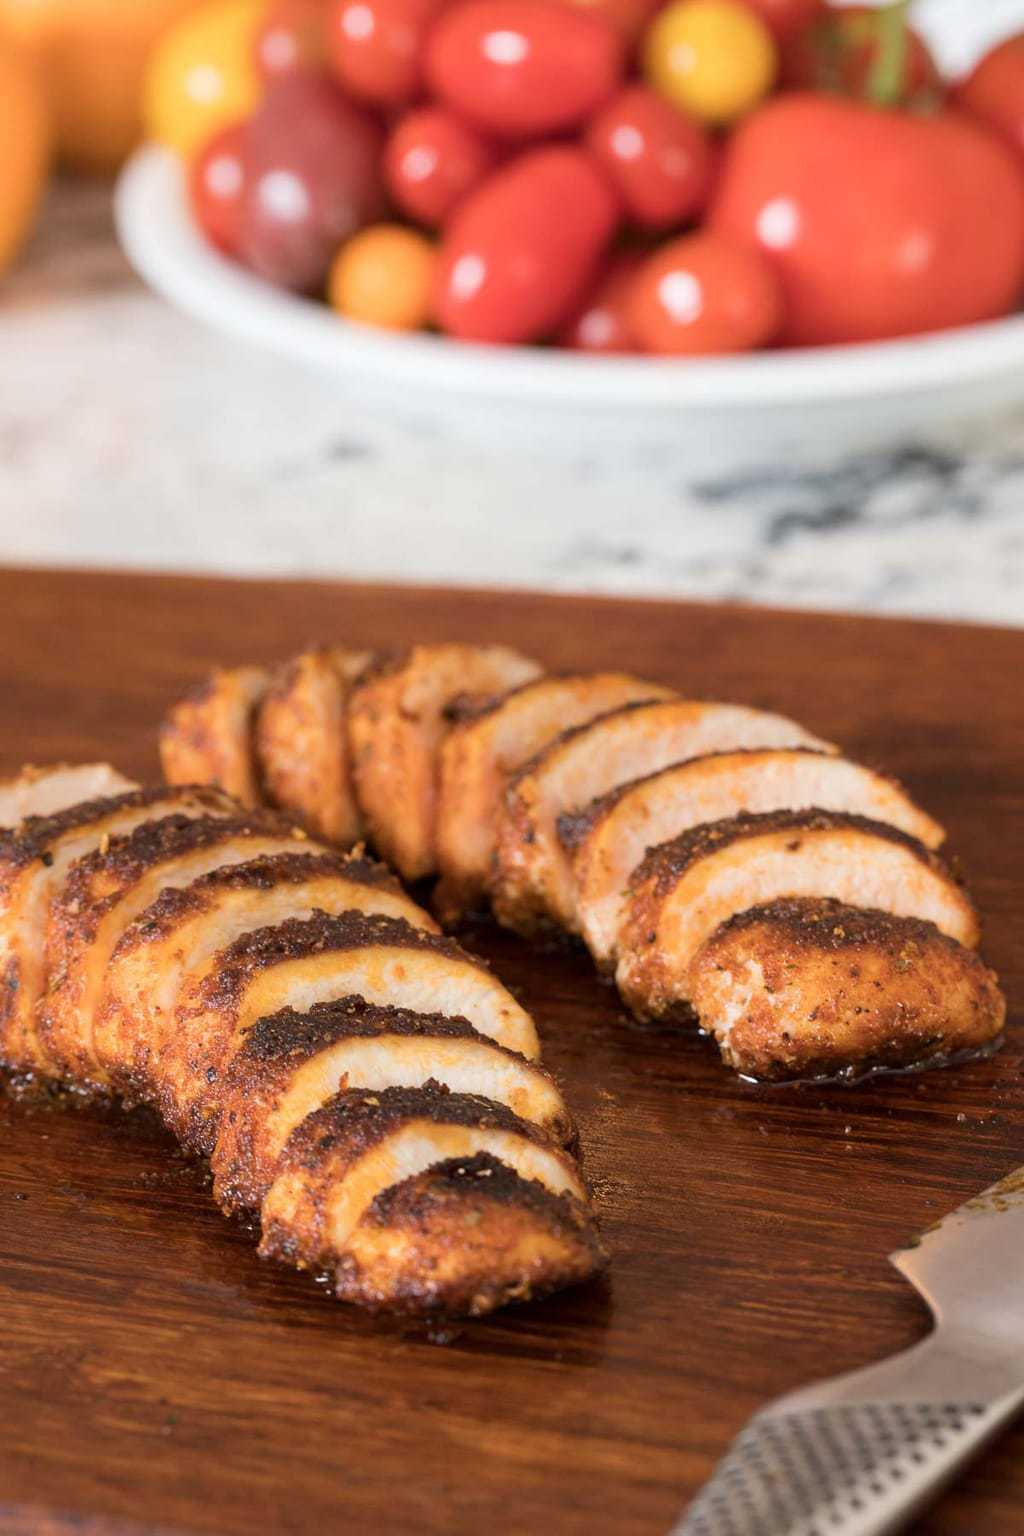 Photo of Restaurant Style Sautéed Chicken Breasts sliced on a cutting board. A plate of fresh tomatoes is in the background.